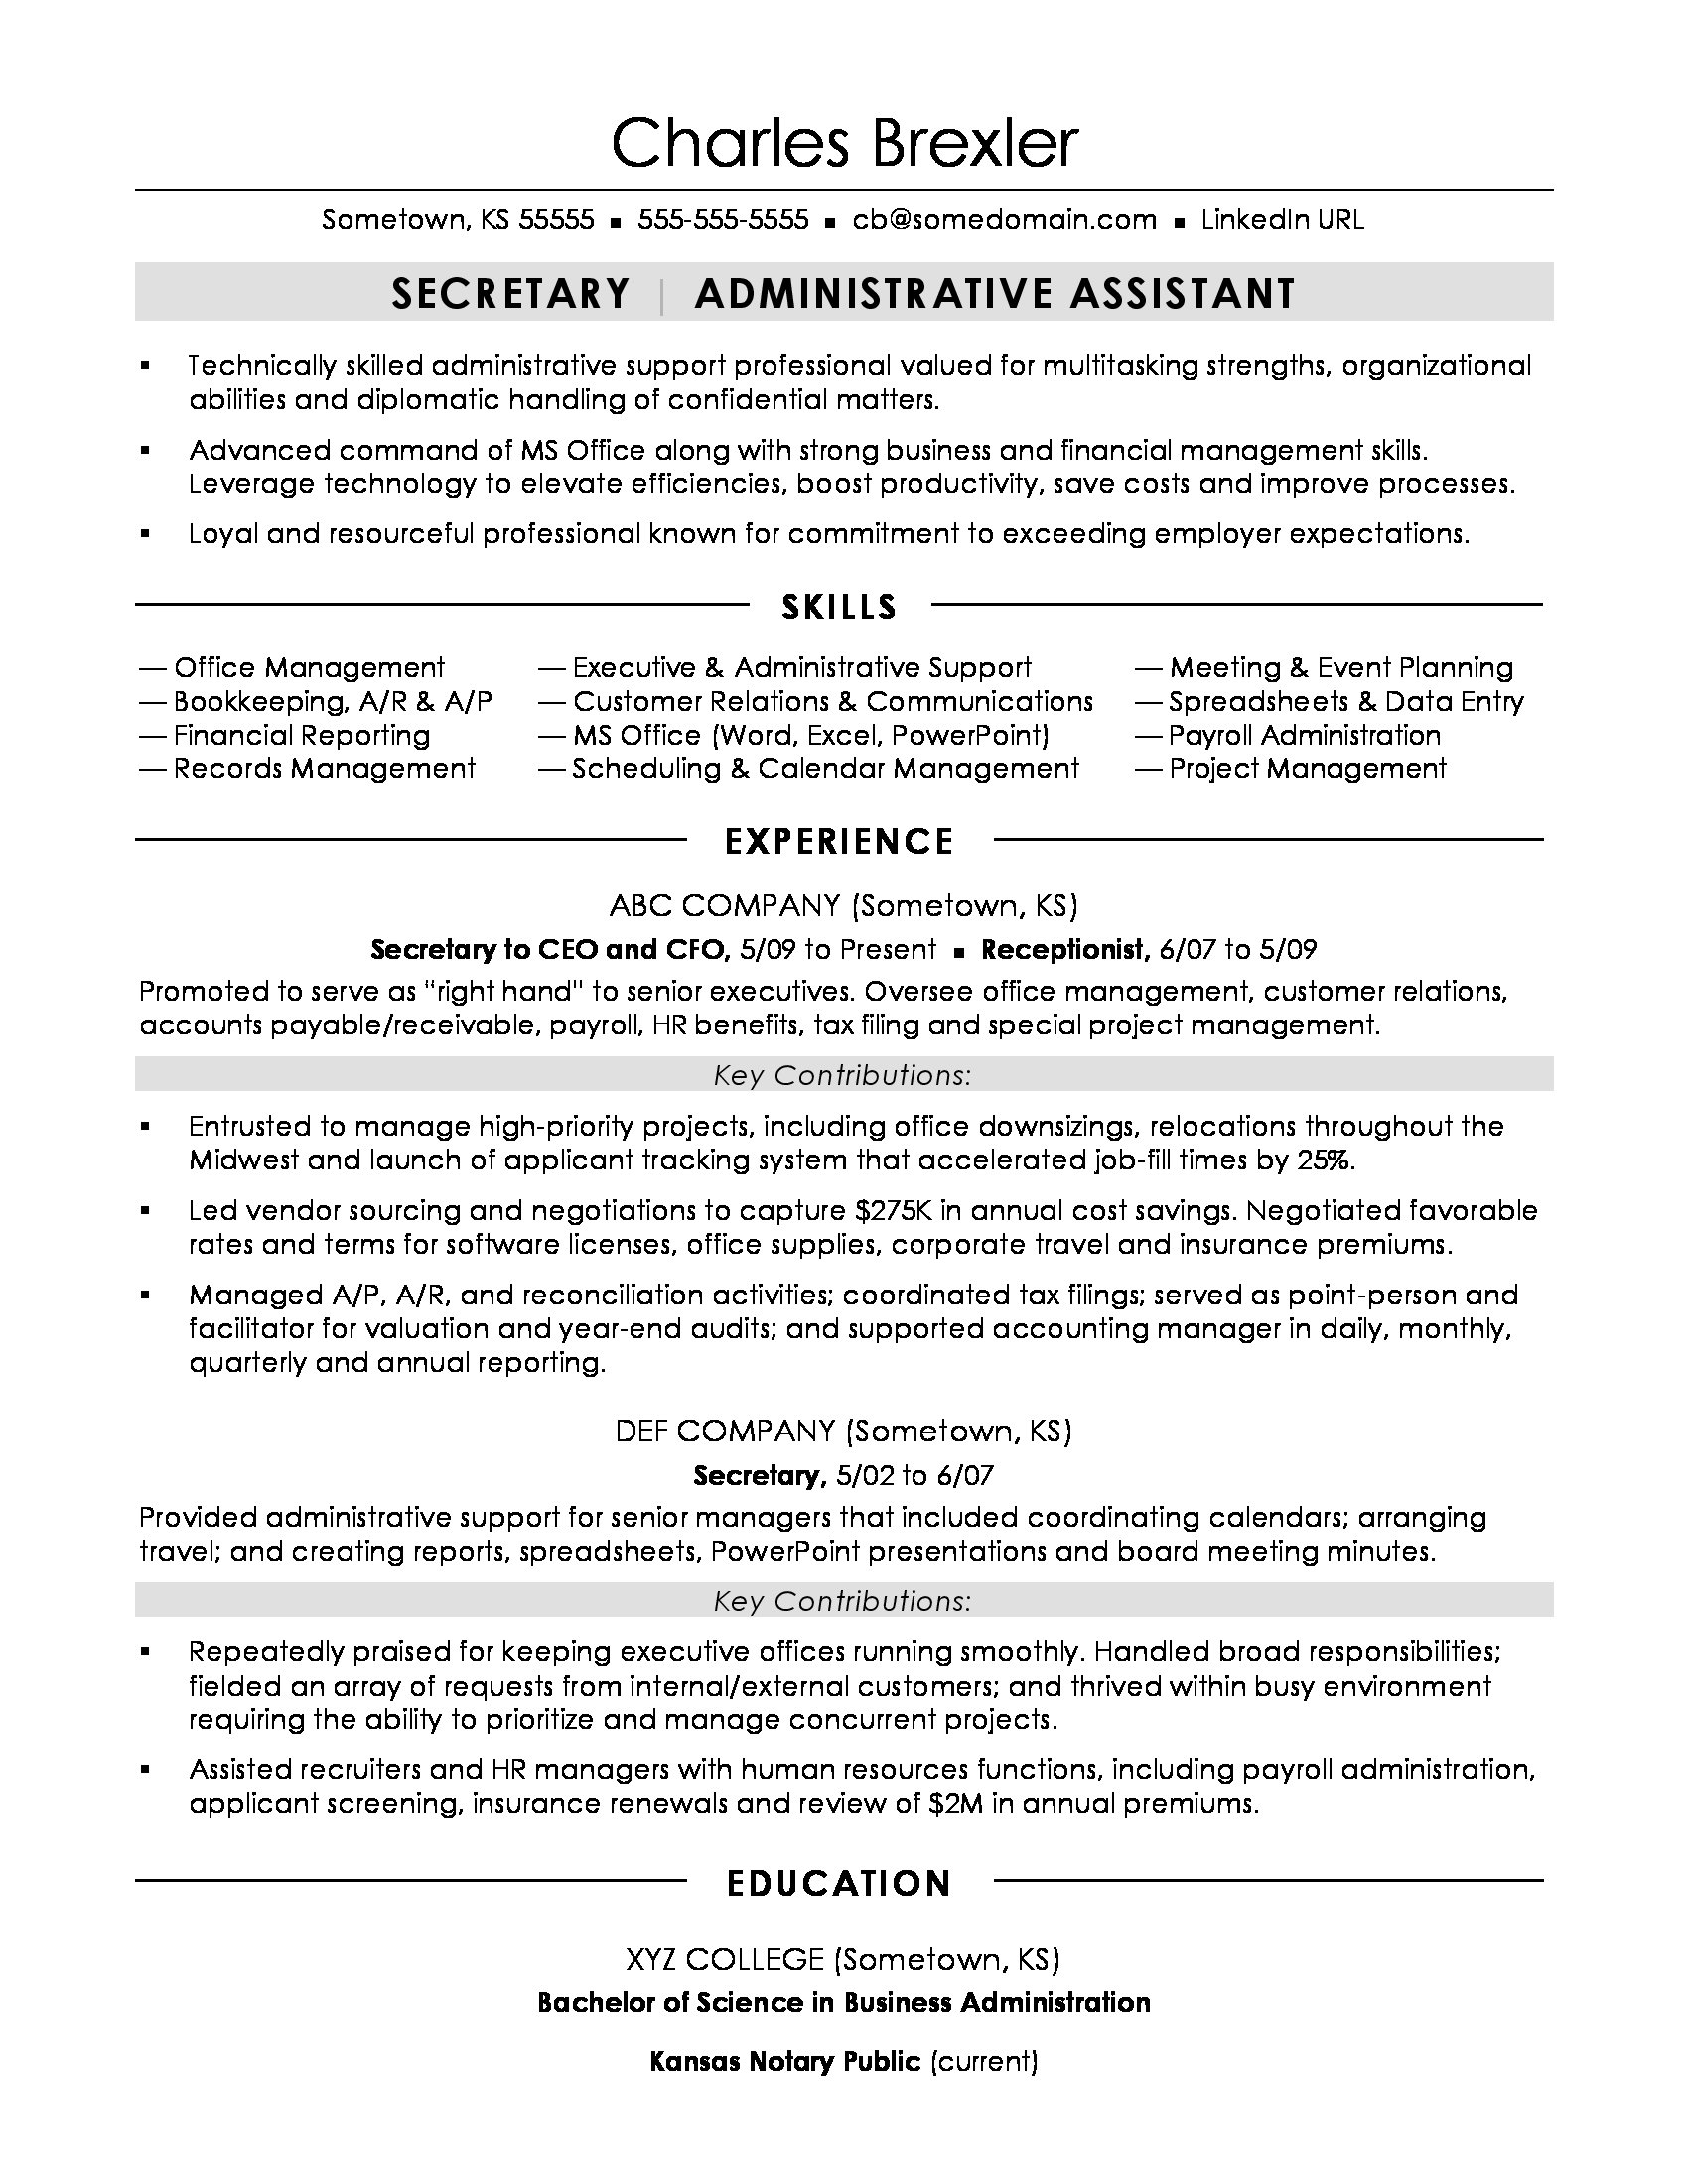 Secretary Resume Sample  The Perfect Resume Sample